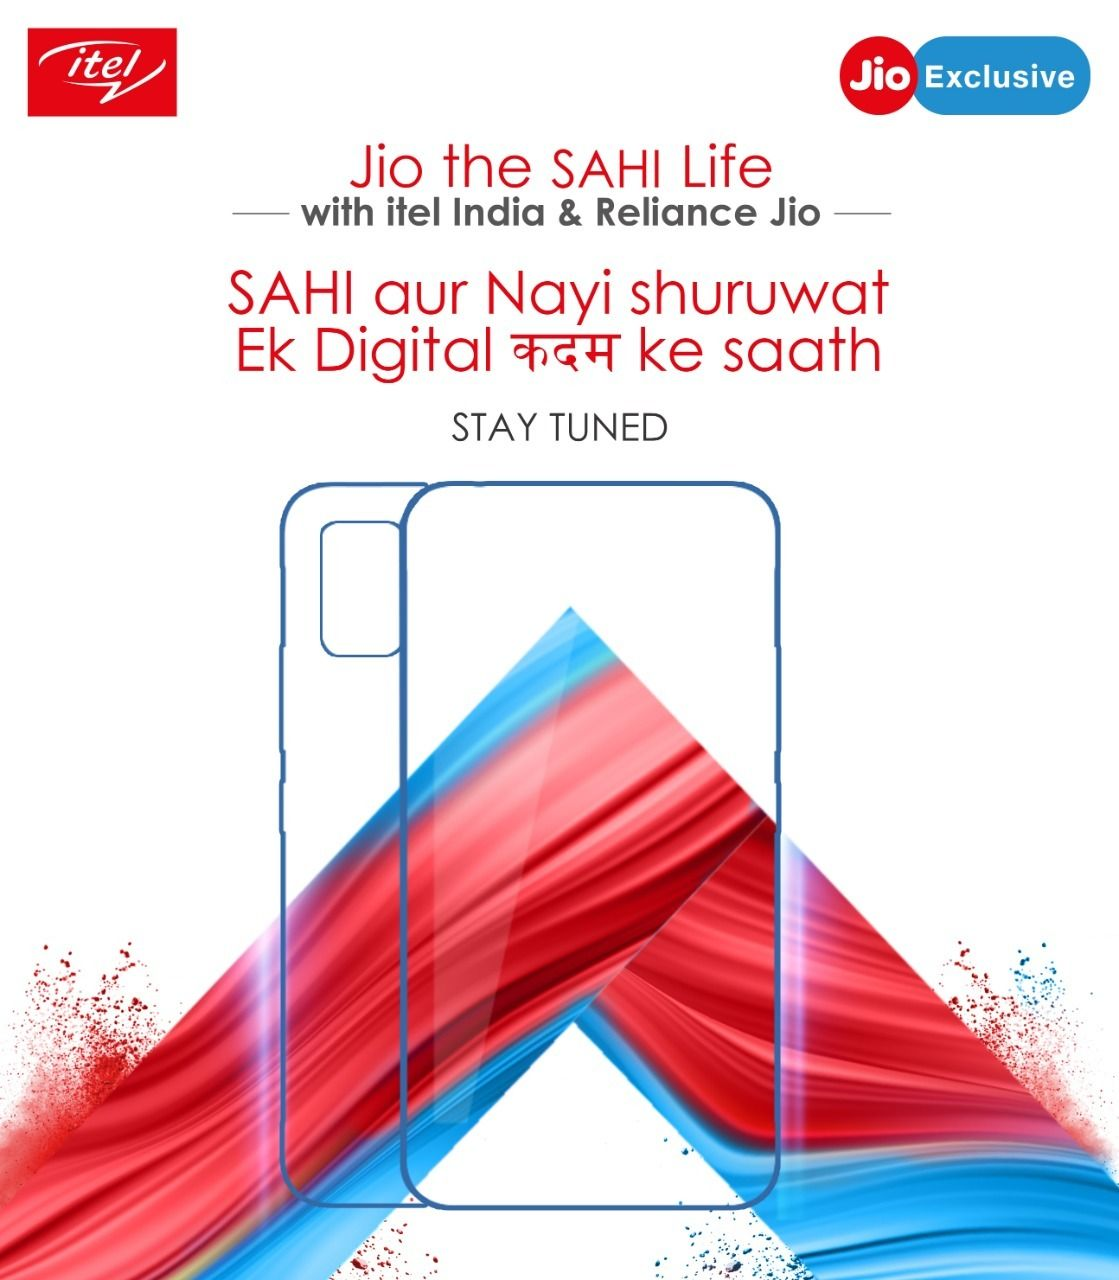 Itel and Reliance Jio teaming up soon to bring low-cost smartphones